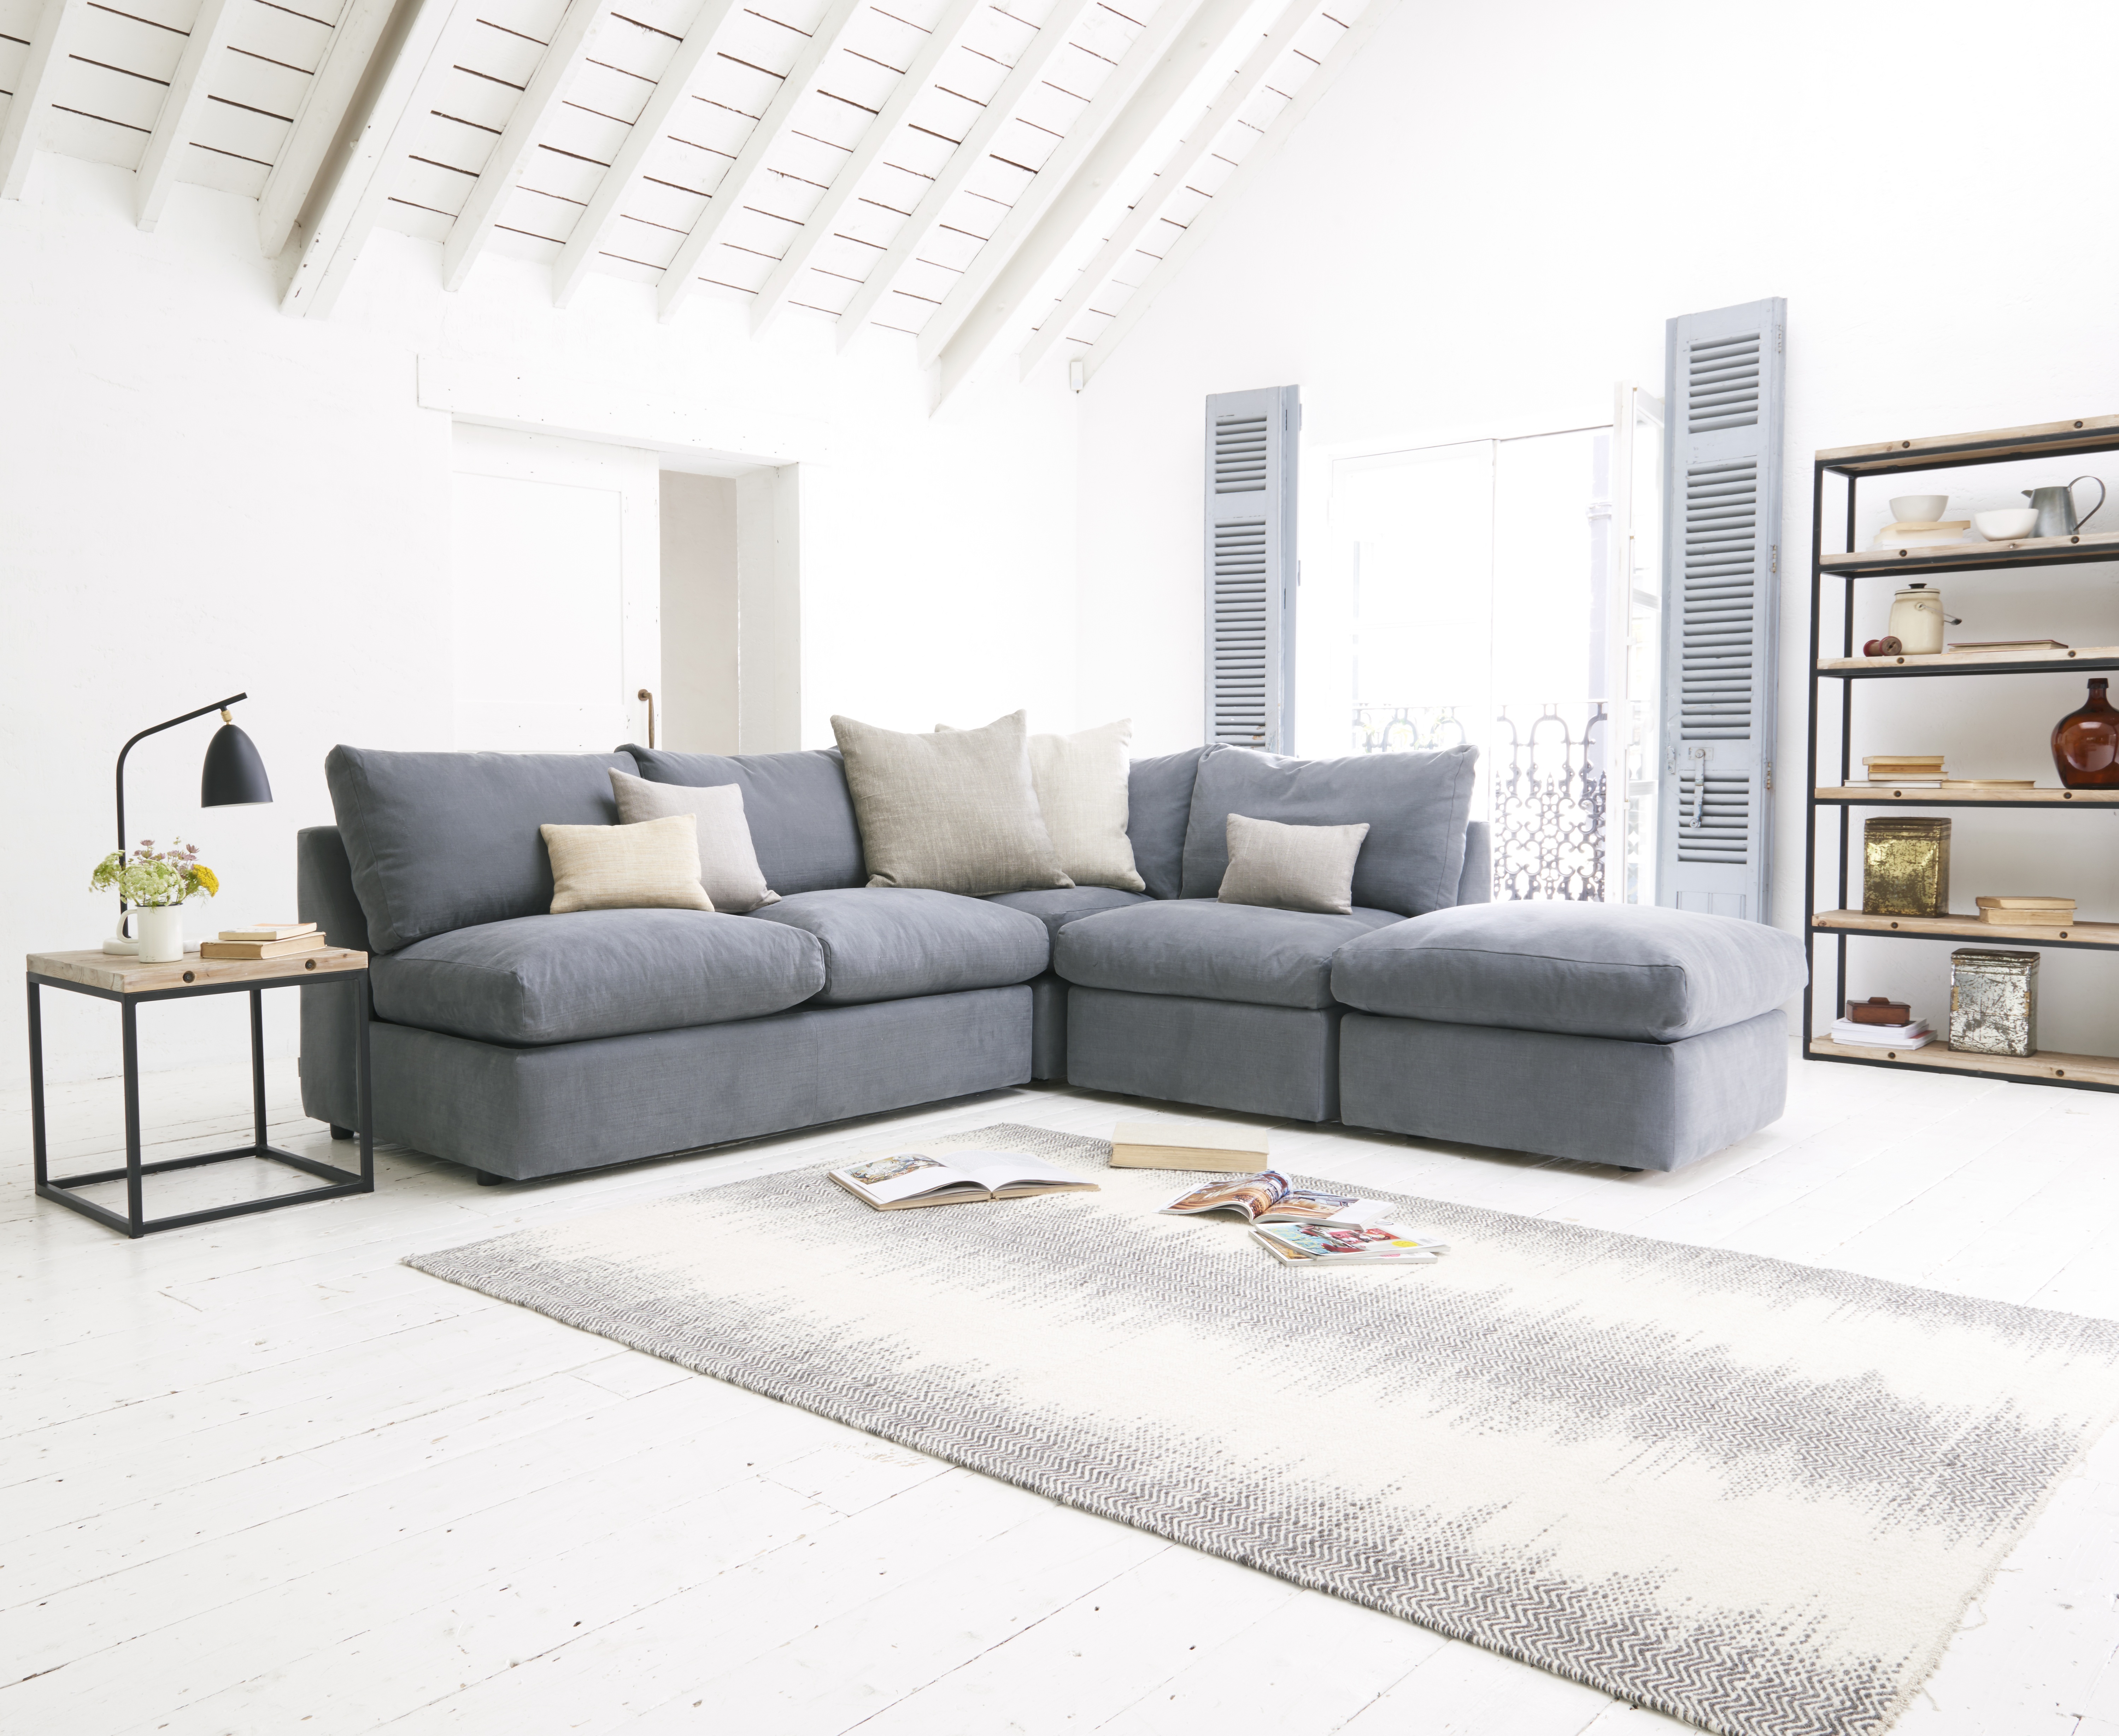 reputable site 54e5c 552c9 Large left hand Chatnap modular corner storage sofa in Thatch house fabric